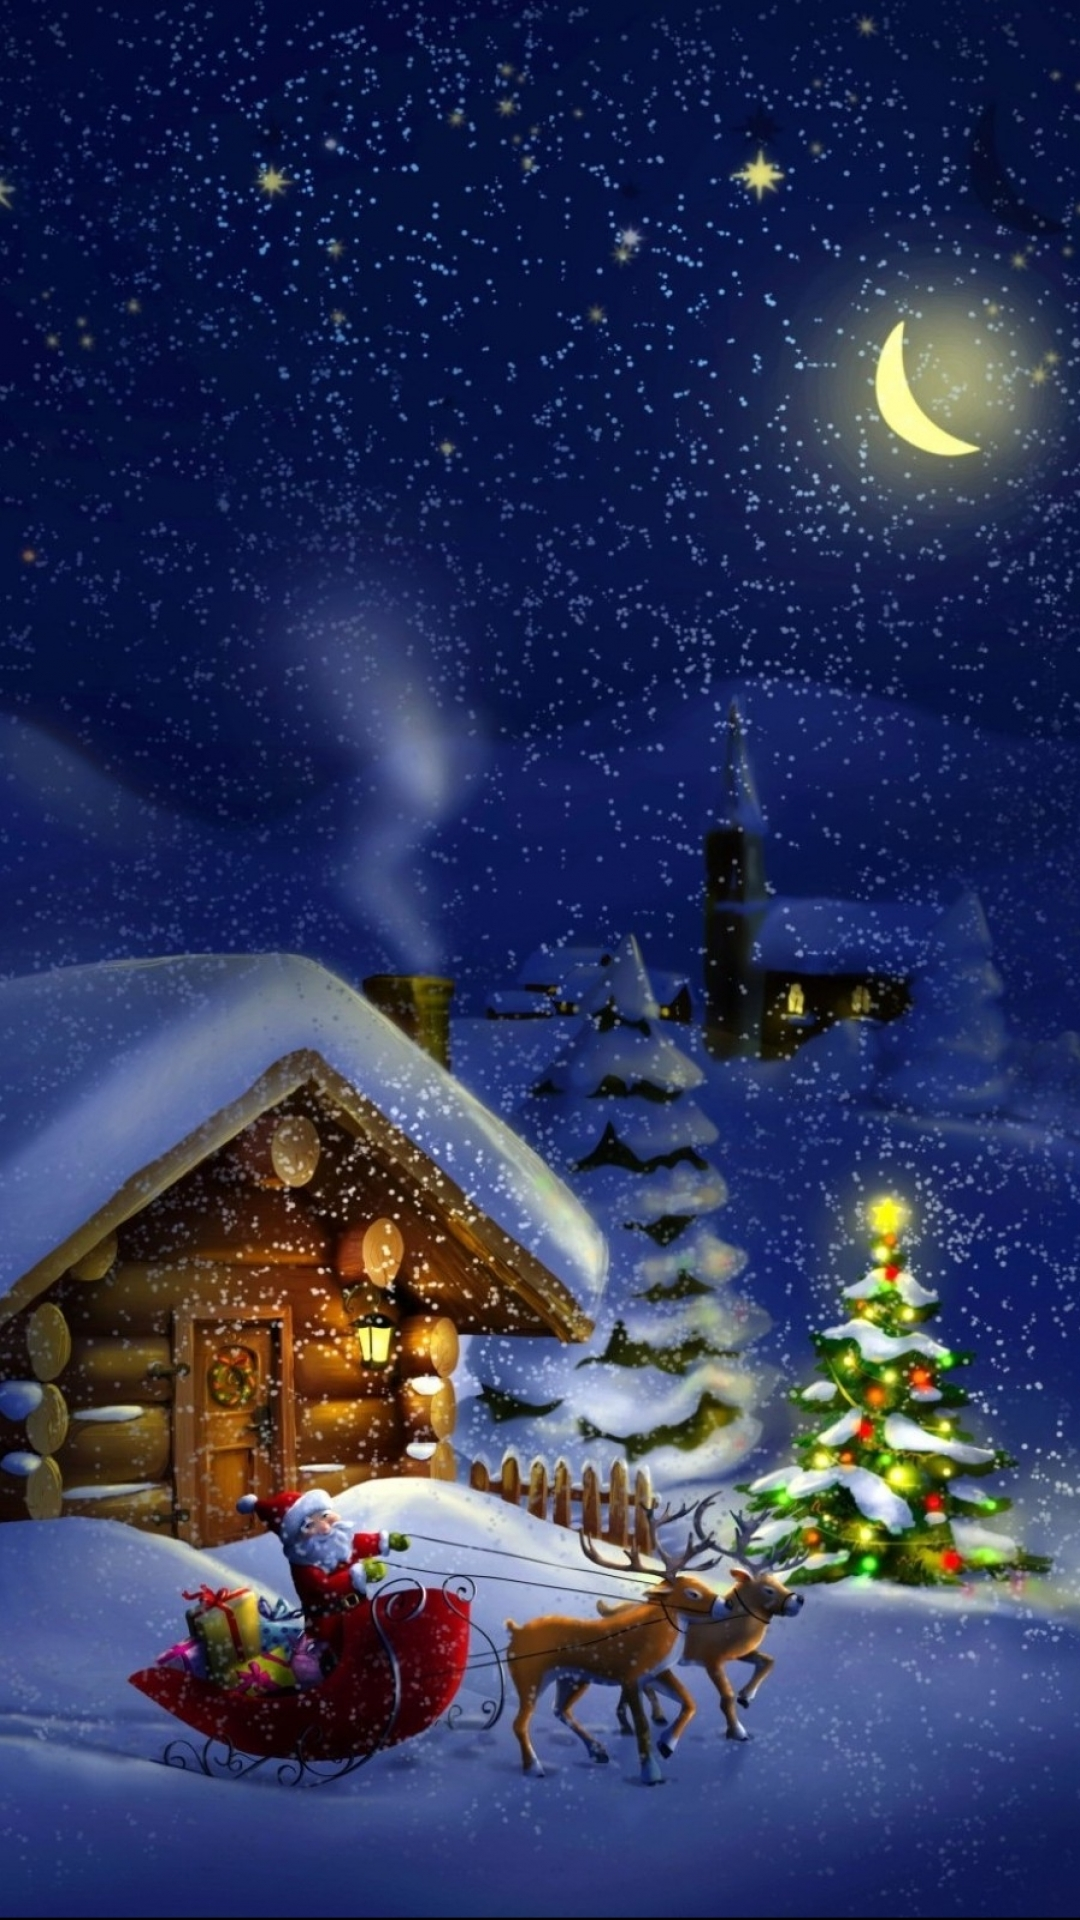 Free Animated Falling Snow Wallpaper Iphone 7 Plus Holiday Christmas Wallpaper Id 125201